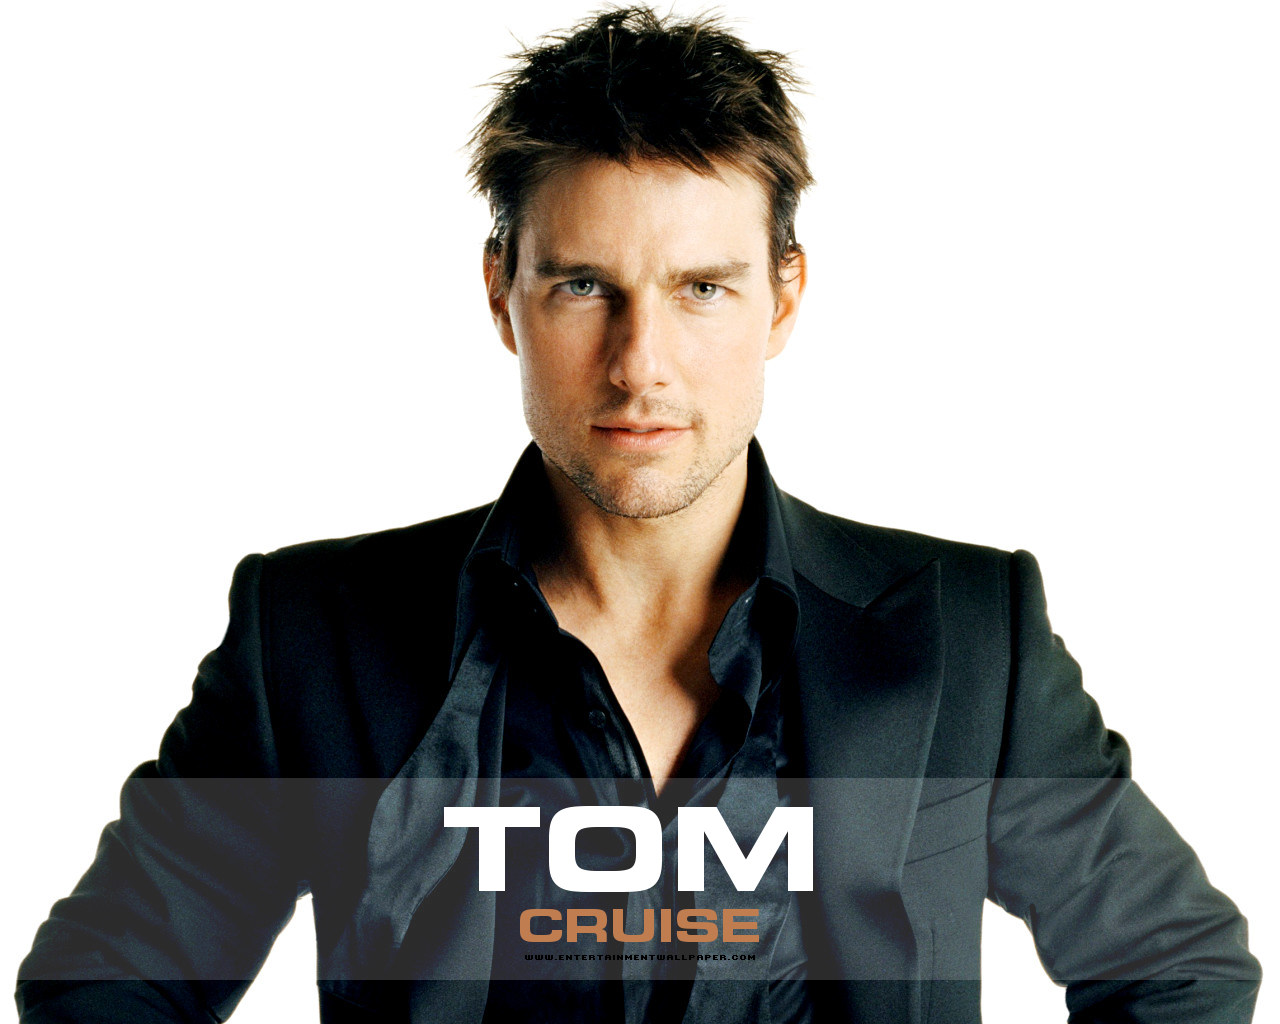 wallpaperstopick tom cruise wallpapers 1280x1024